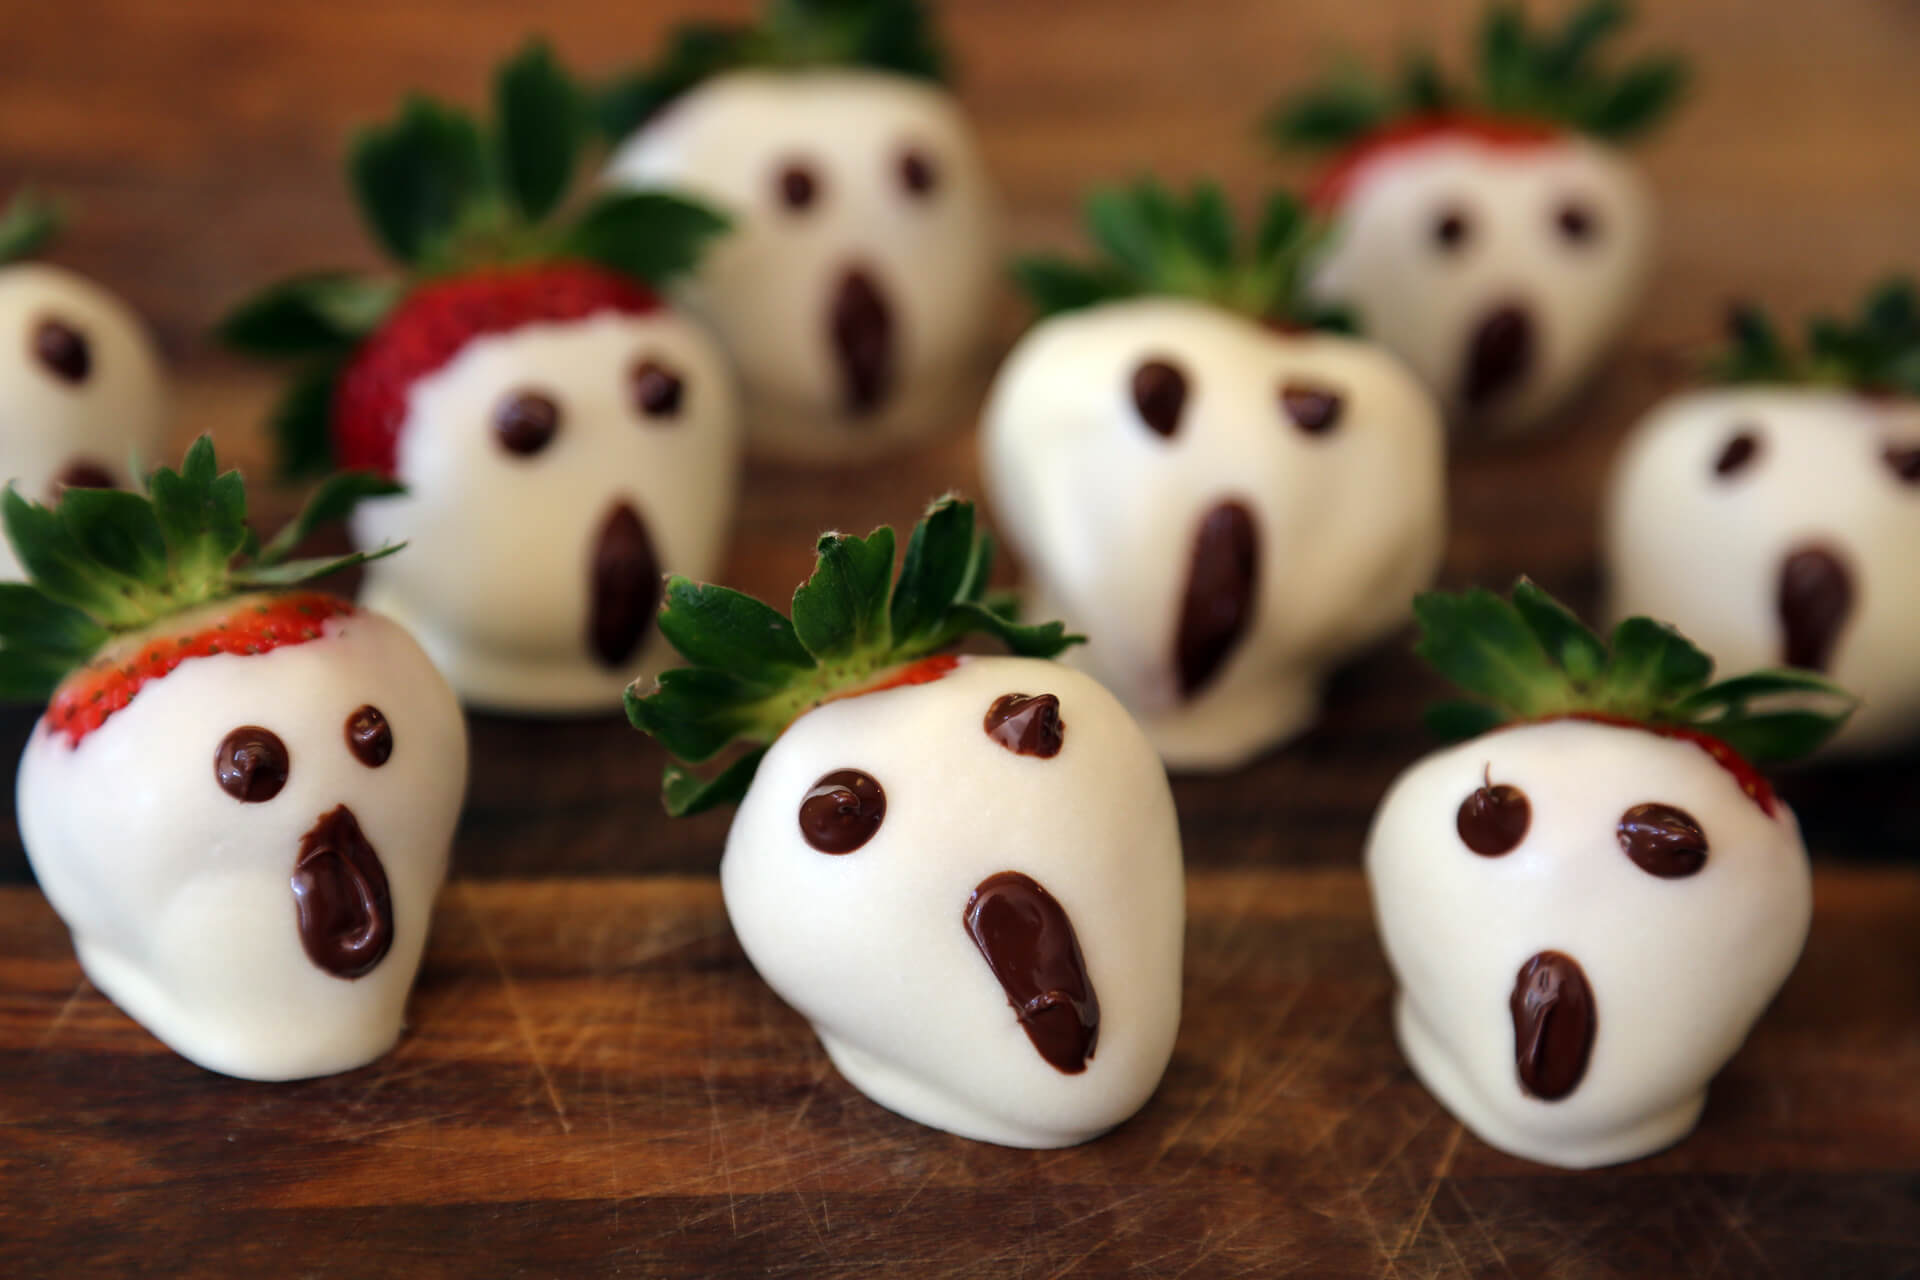 white chocolate dipped strawberry halloween food ideas